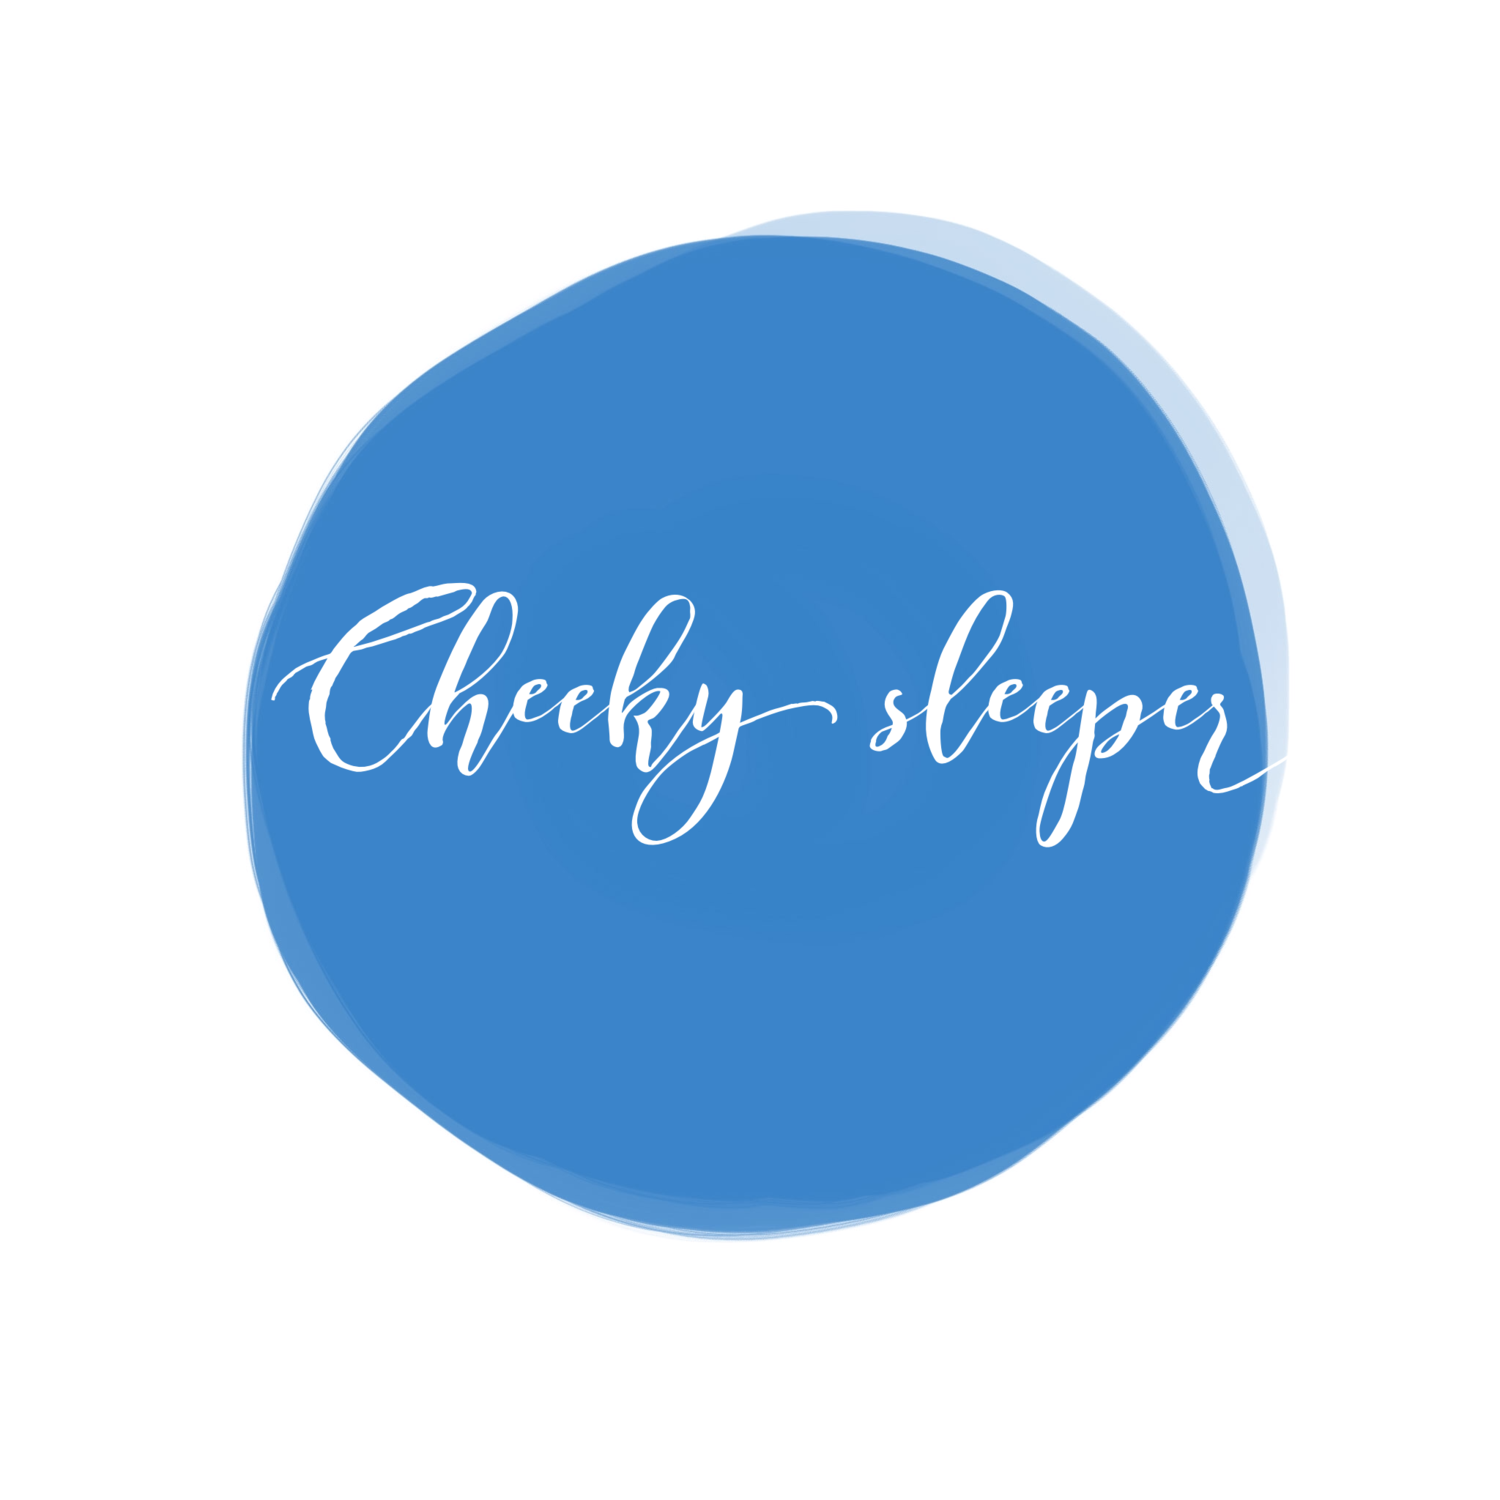 Cheeky Sleeper - Paediatric Sleep Consultant - Calgary